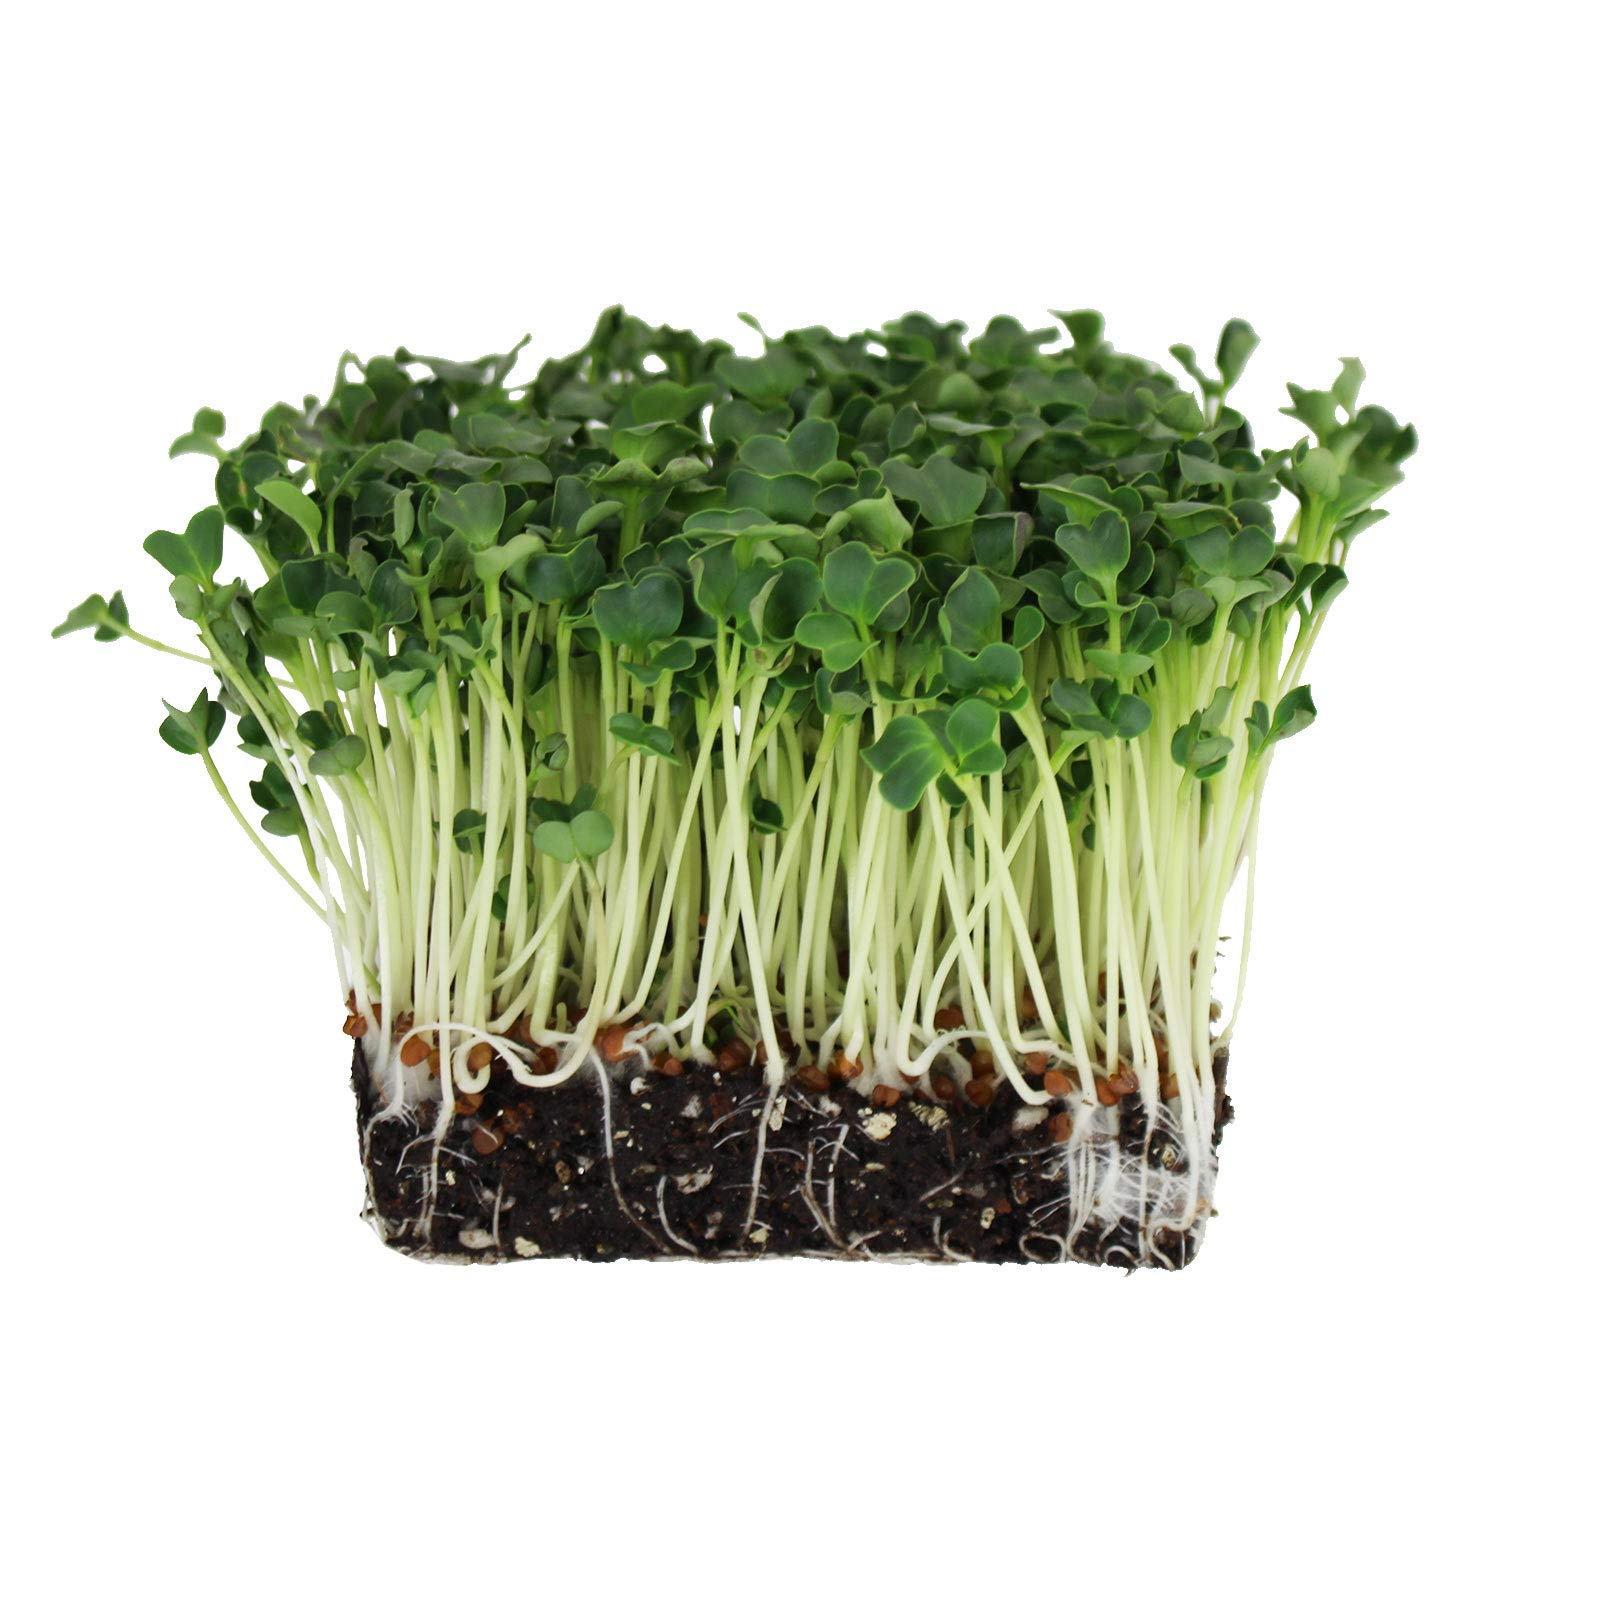 Organic Daikon Radish Sprouting Seeds - 5 Lb Bag - Non-GMO, Heirloom Garden, Sprout and Microgreen Growing Seed